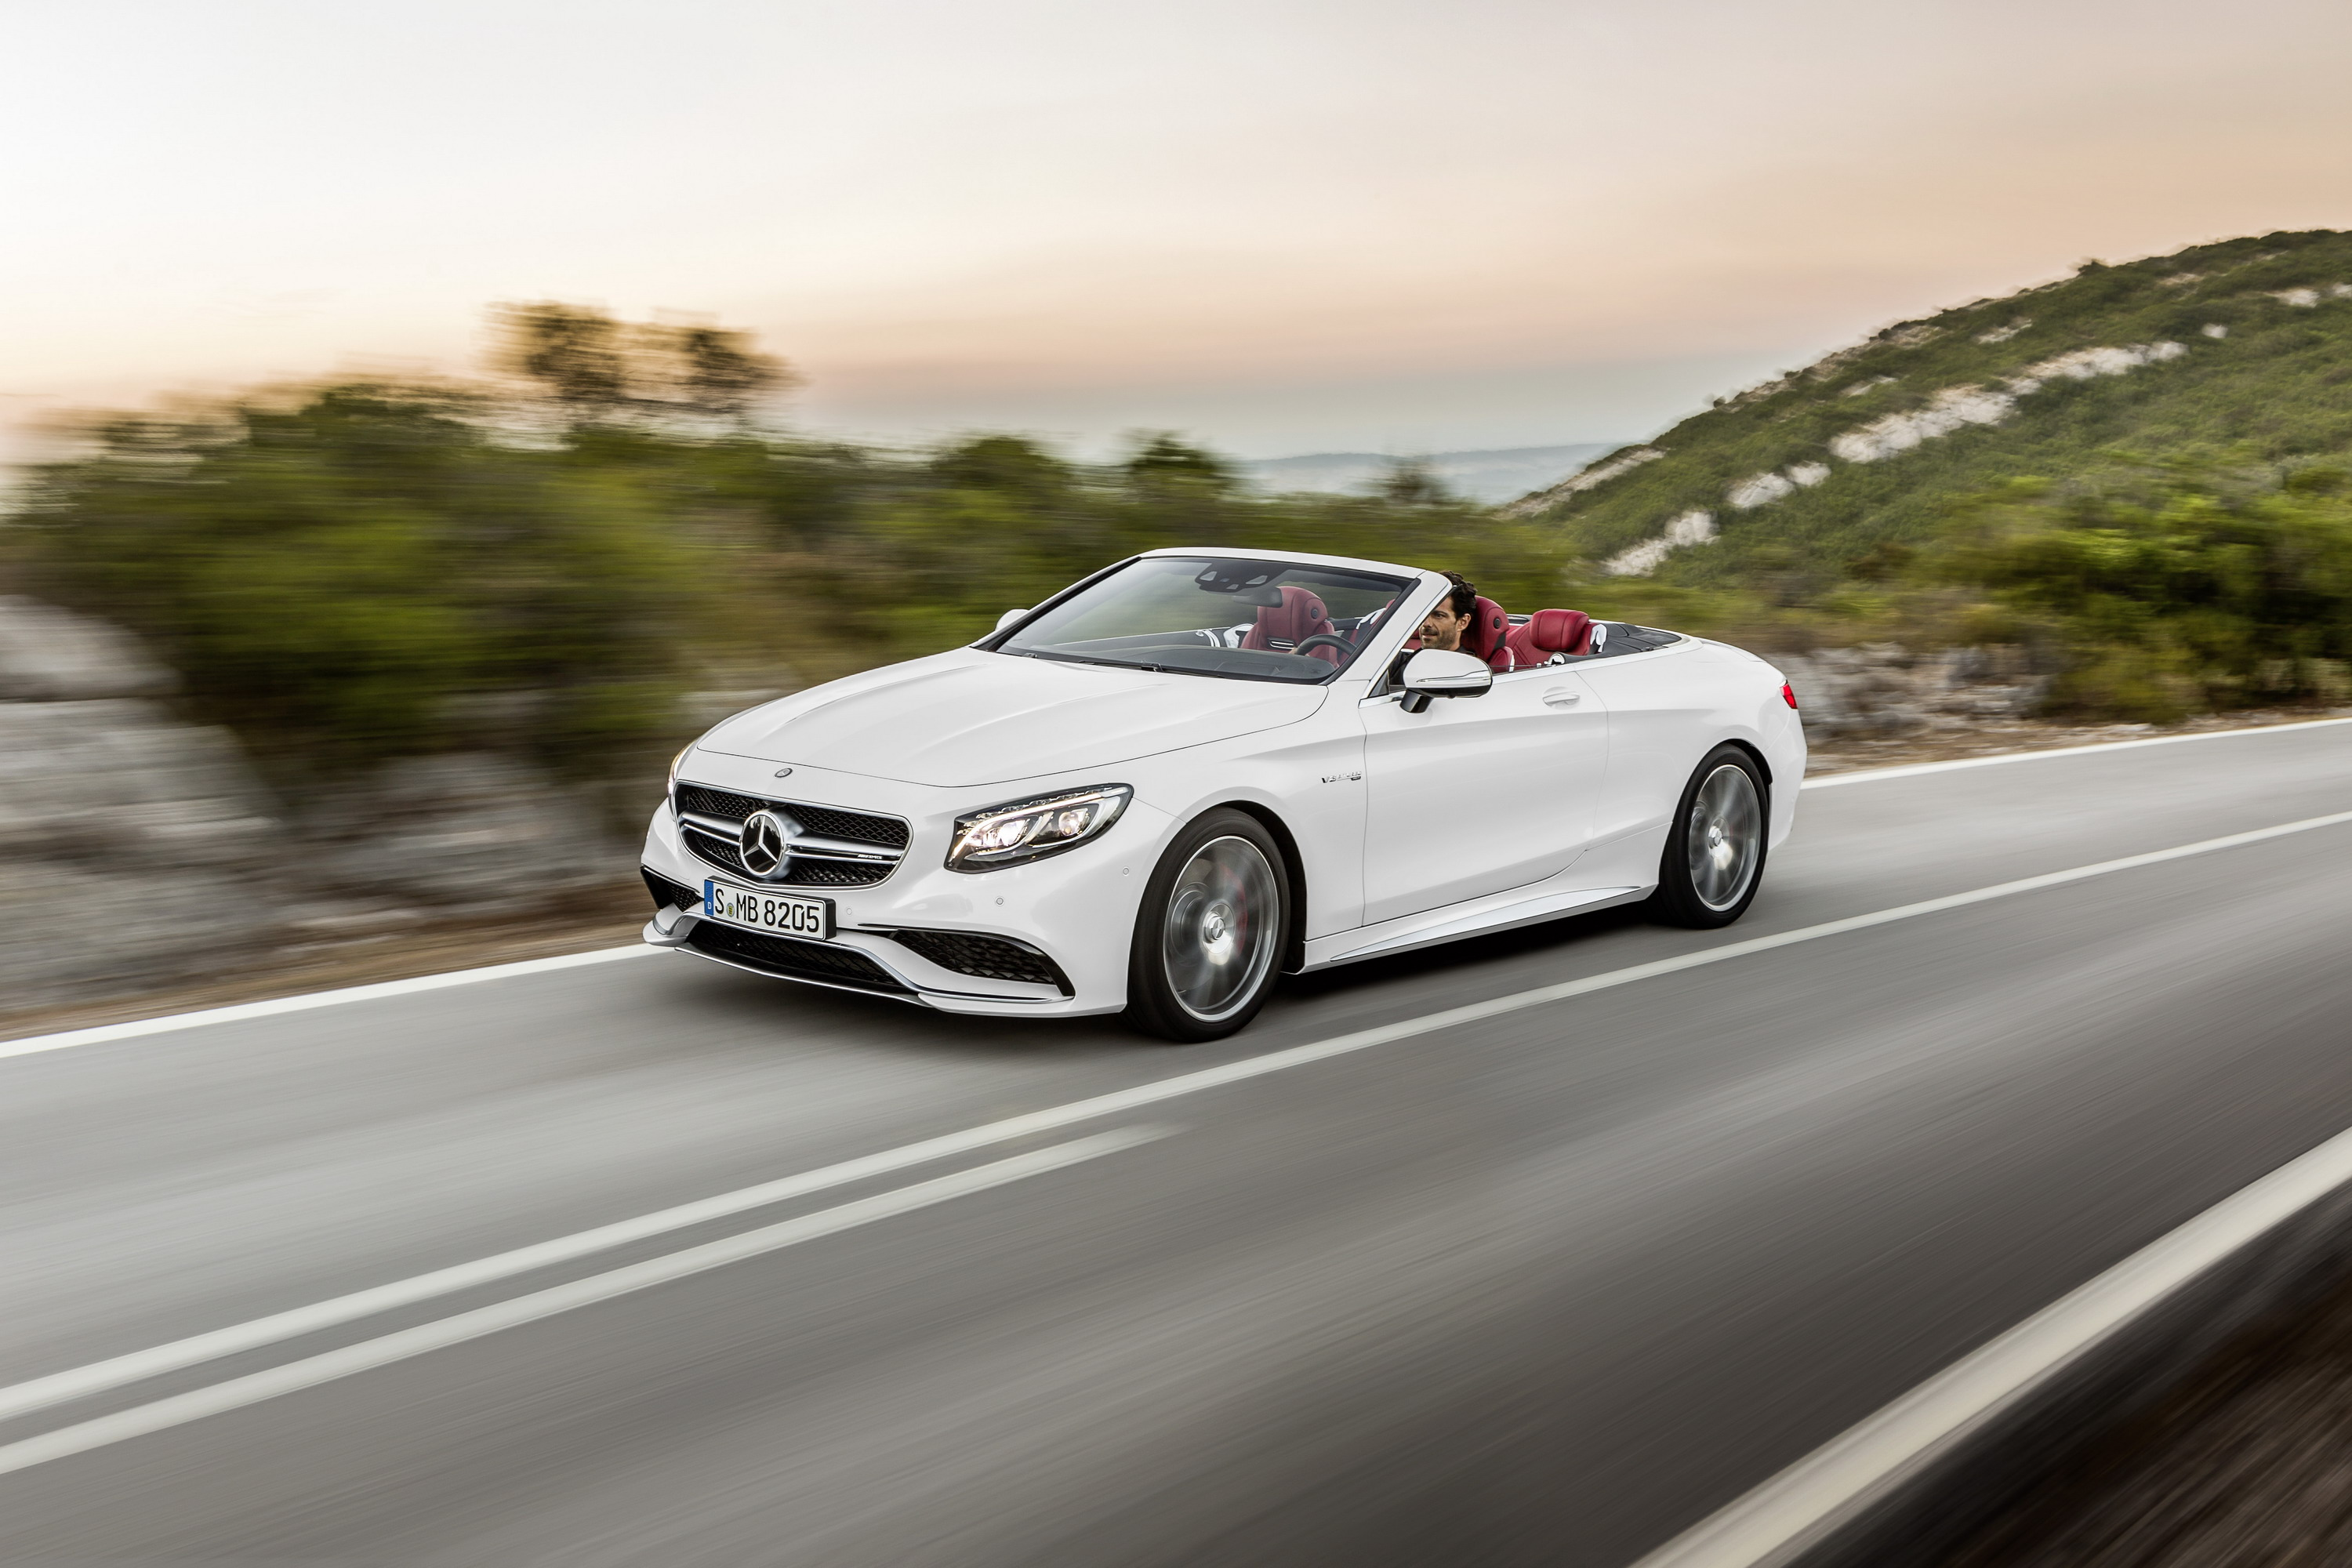 https://pictures.topspeed.com/IMG/jpg/201509/2017-mercedes-amg-s63-con-7.jpg